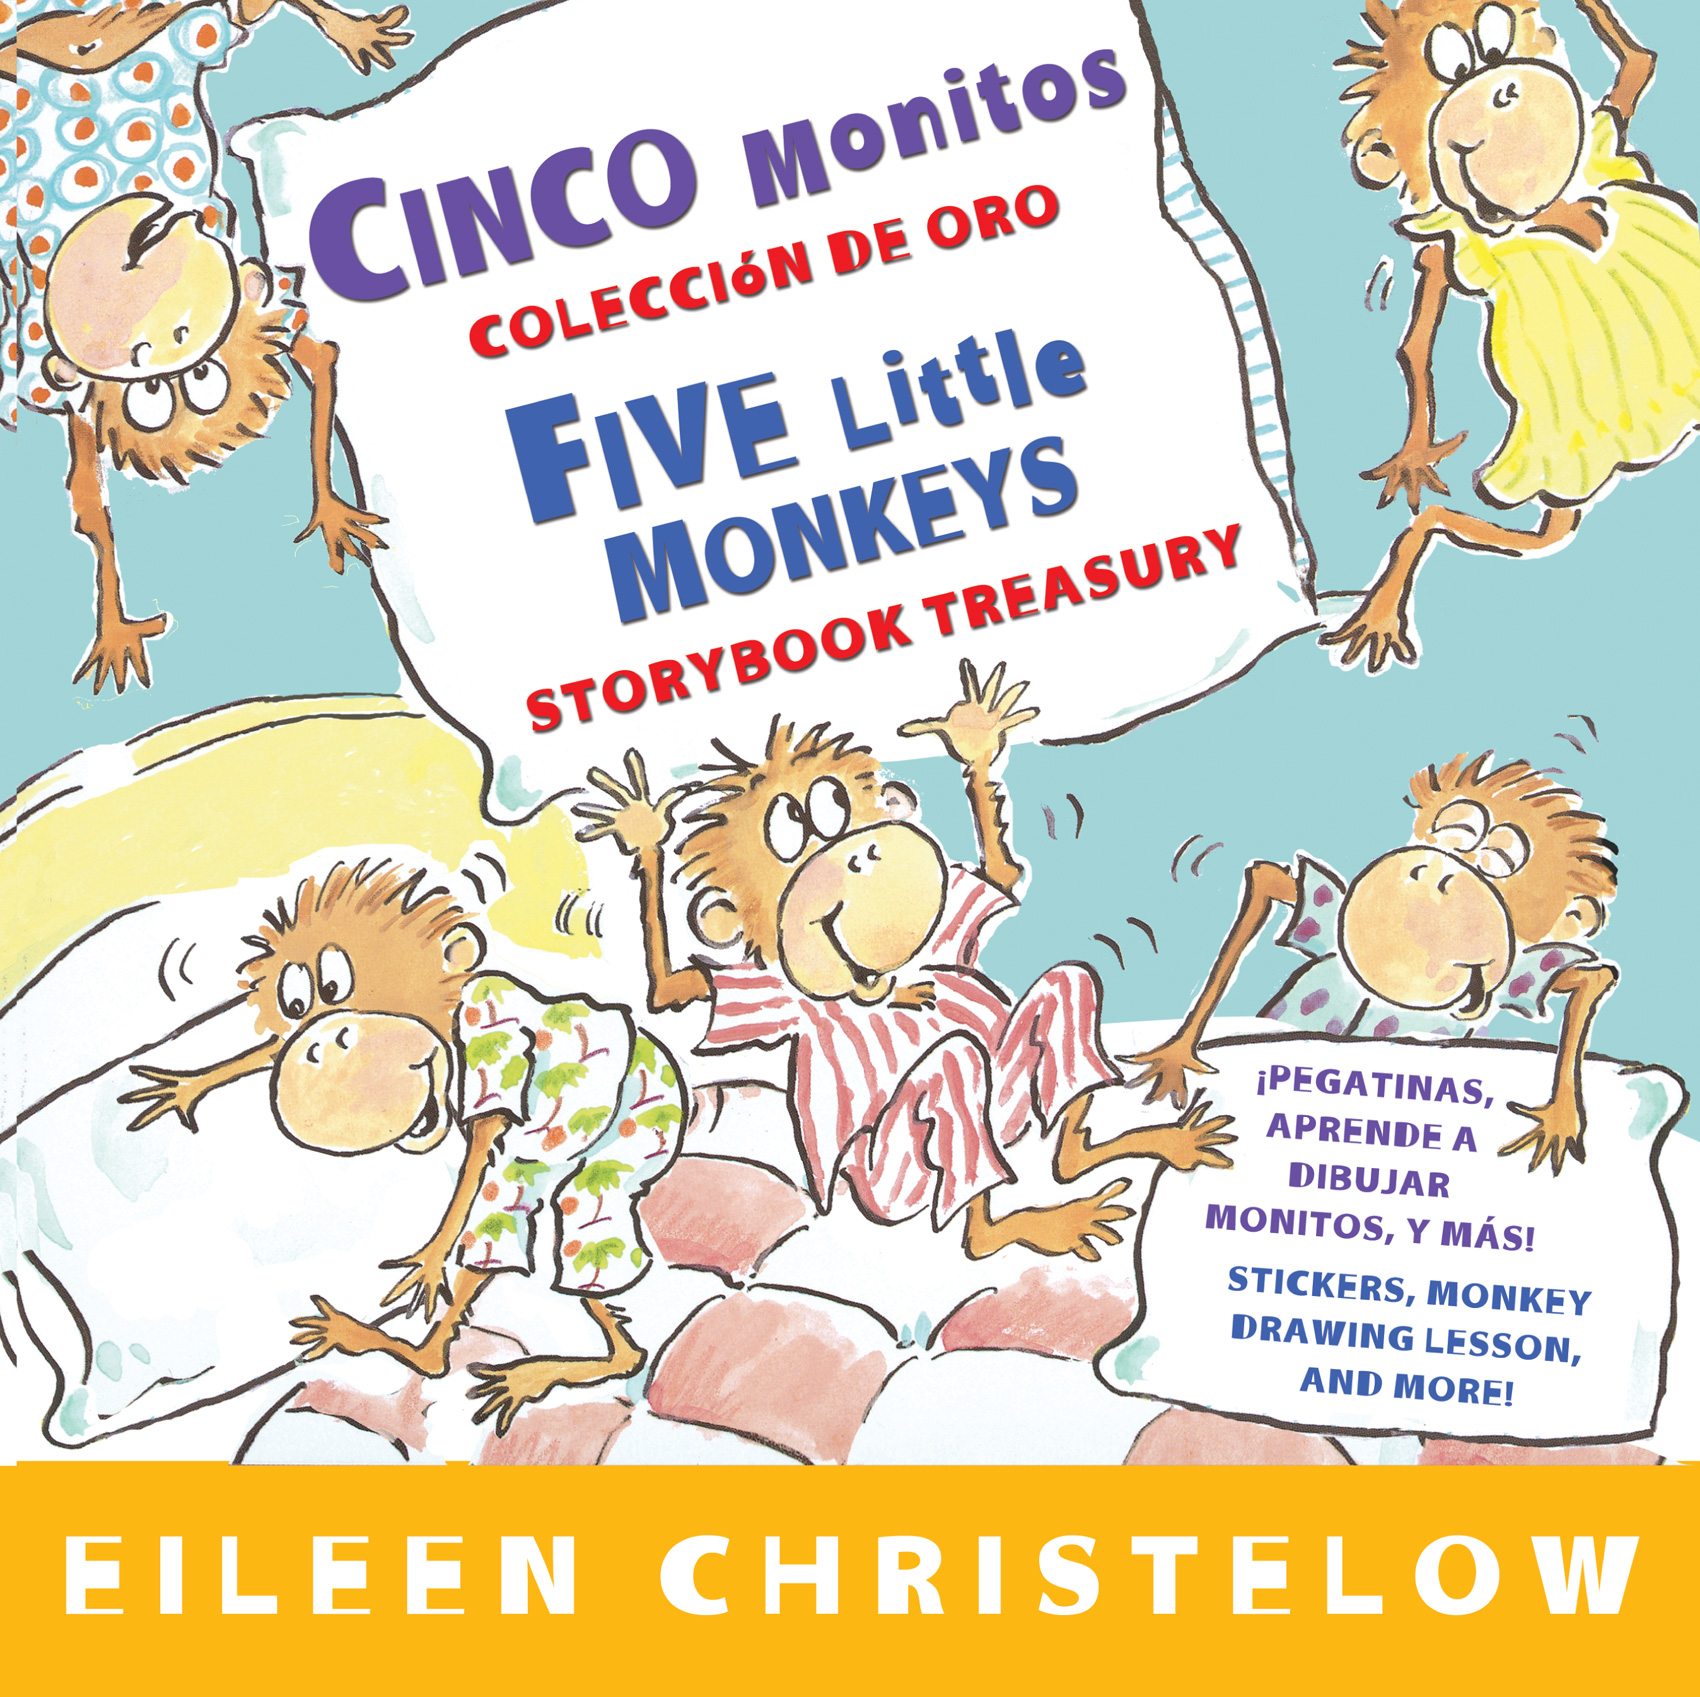 Cinco monitos Coleccion de oro/Five Little Monkeys Storybook Treasury-9780547745930